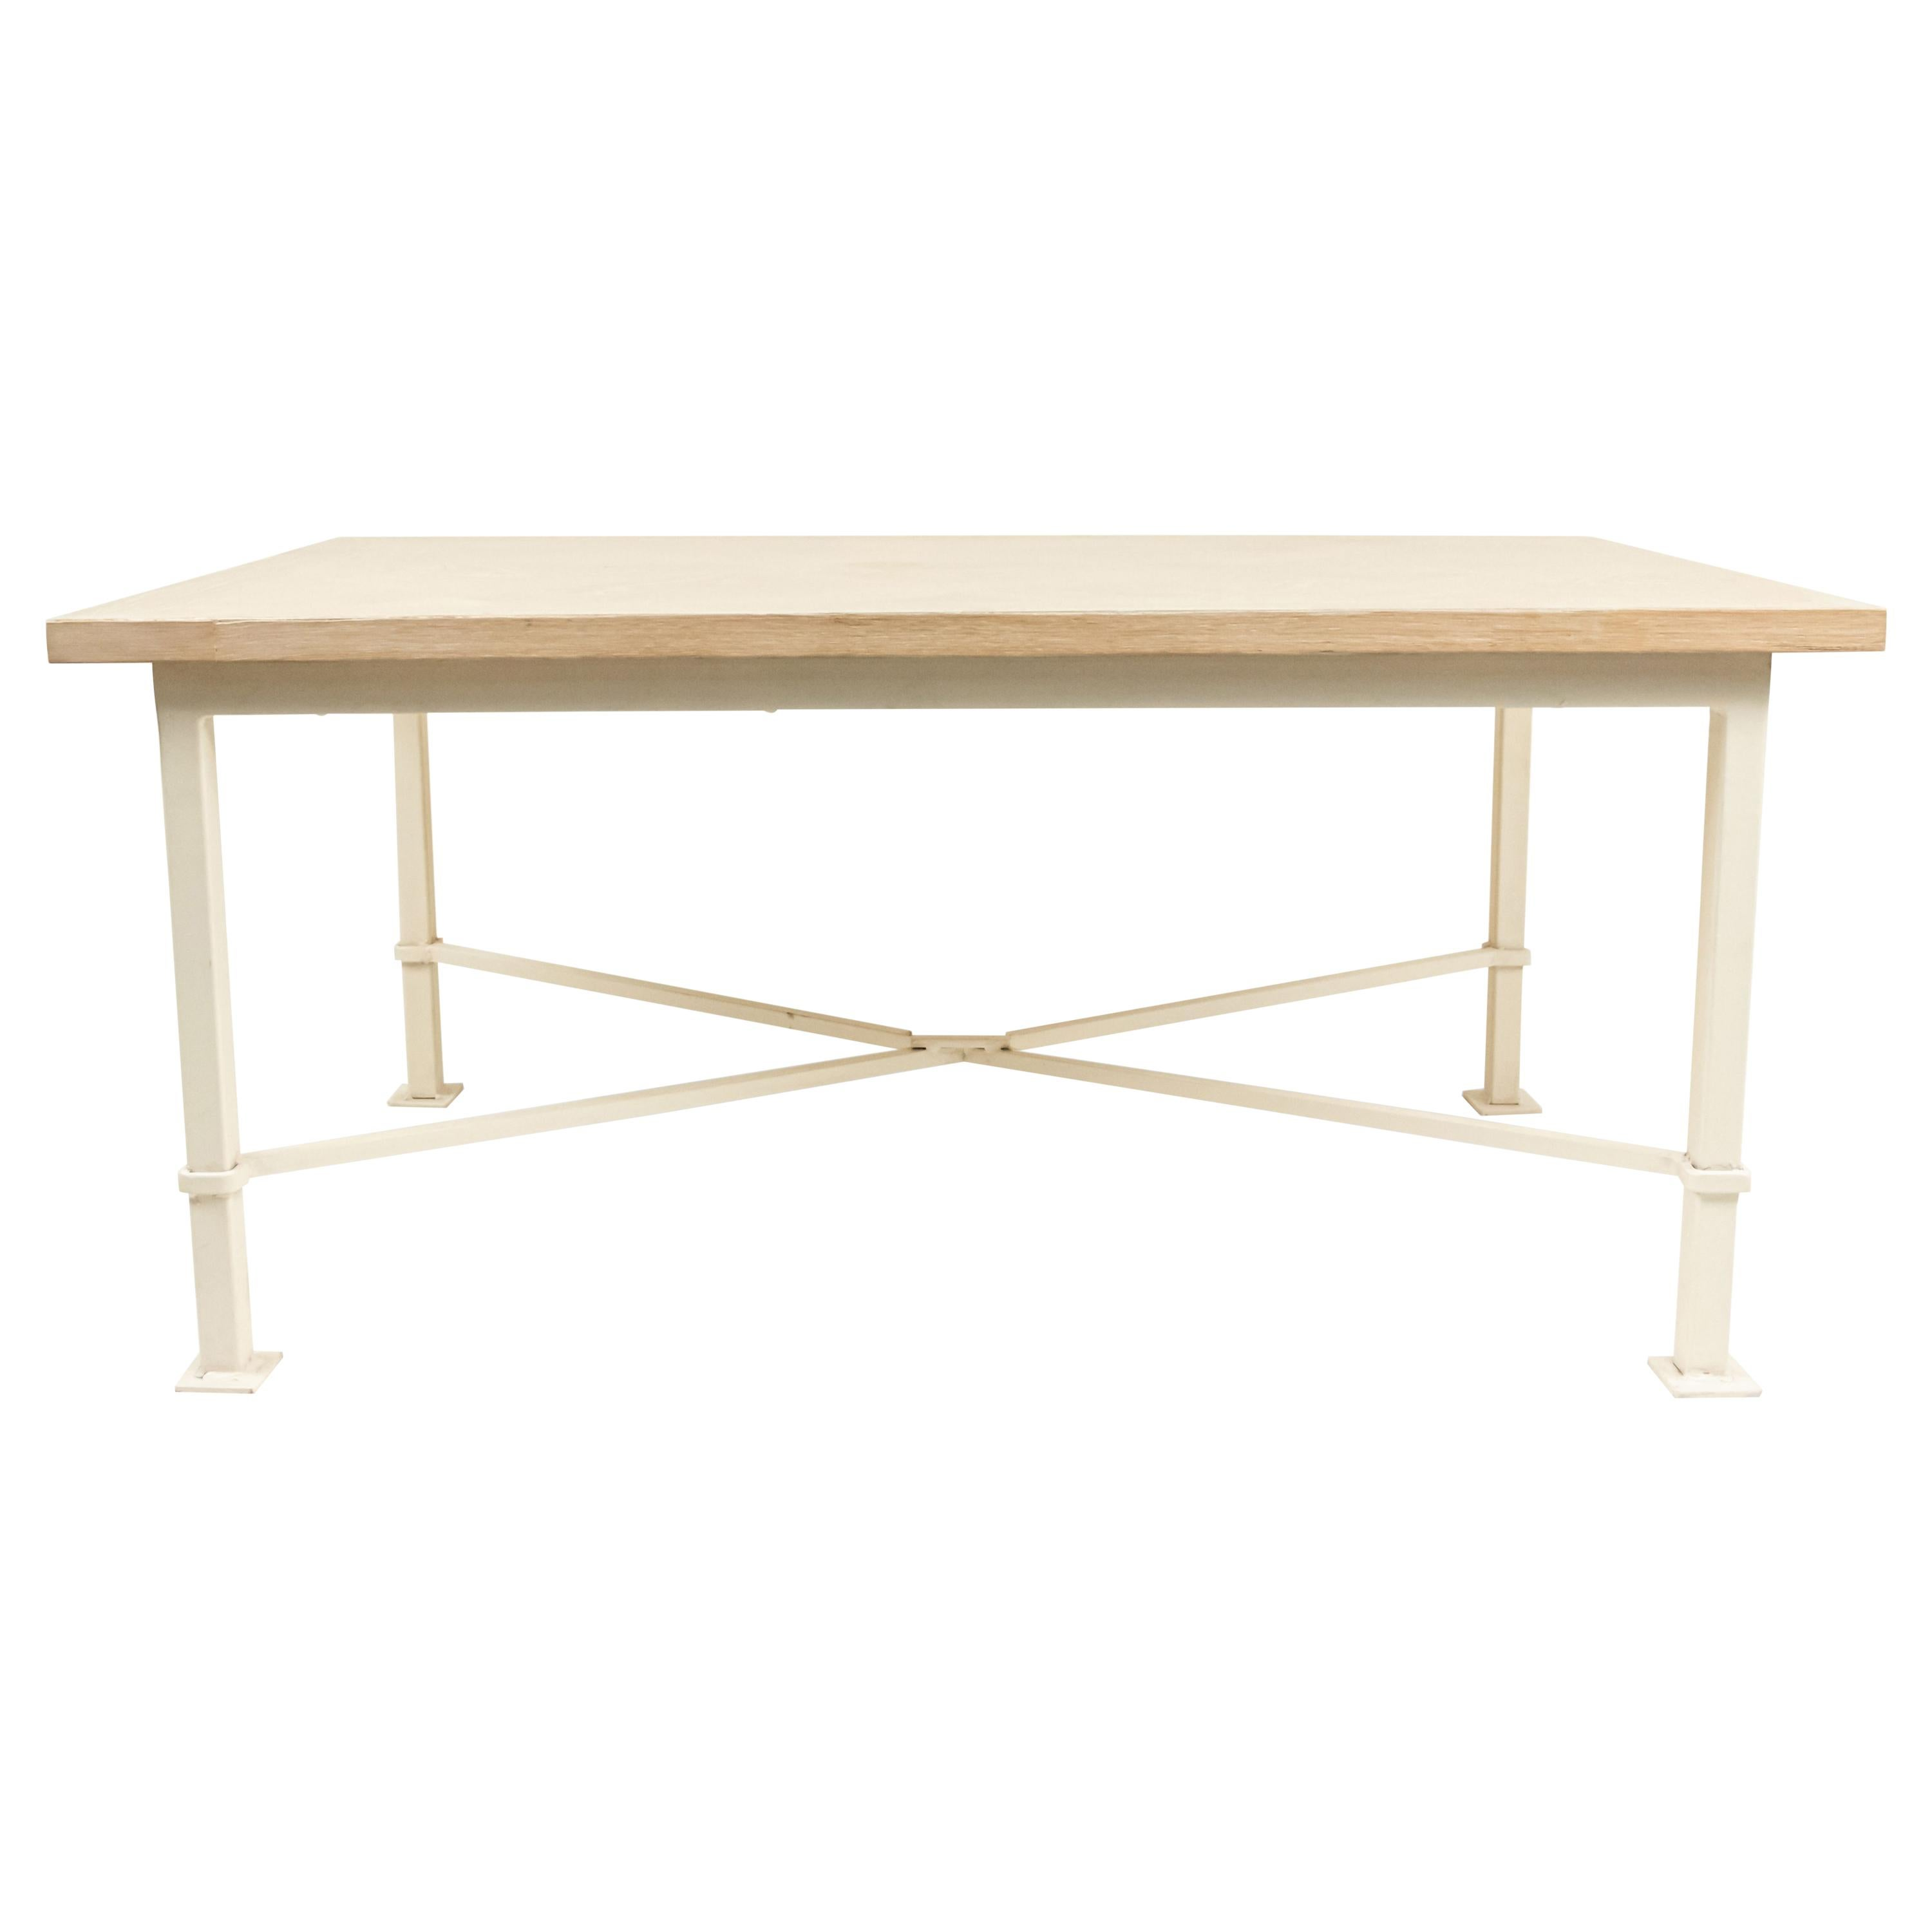 French Midcentury Cerused Oak Coffee Tables